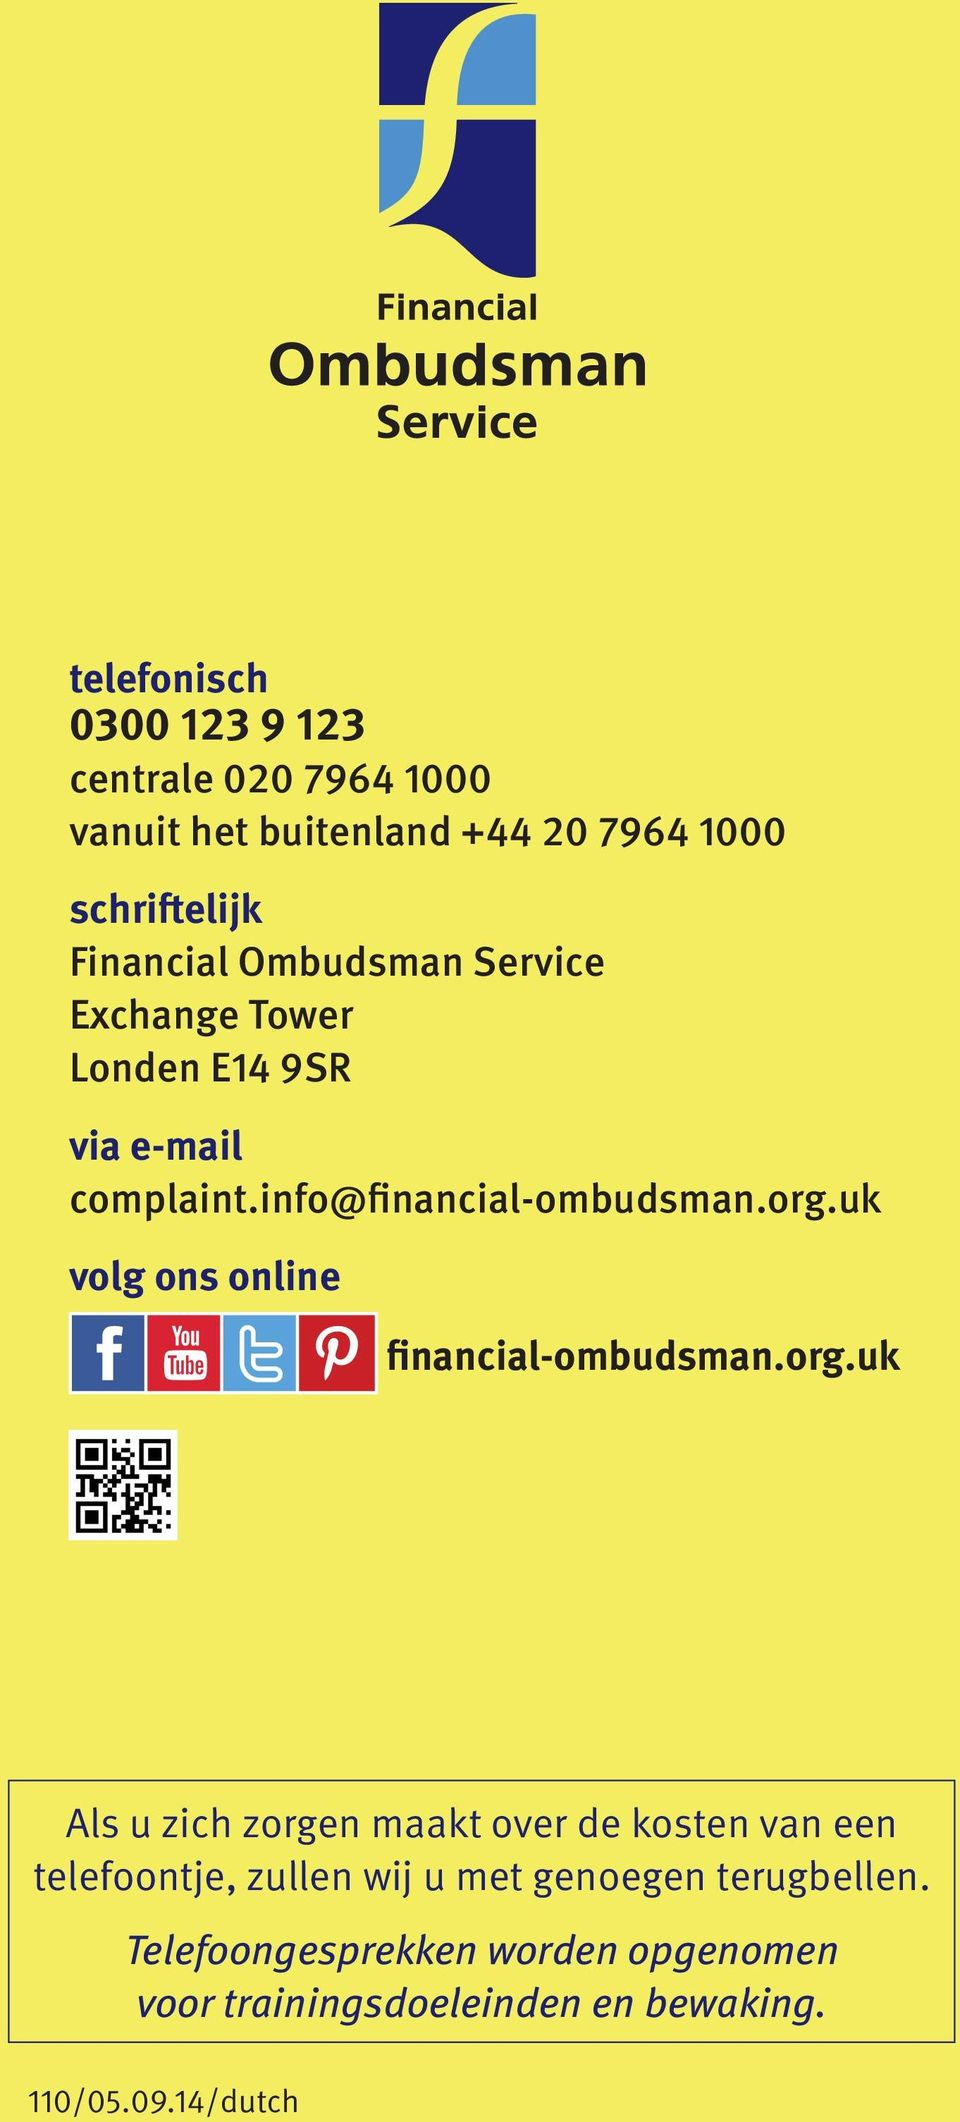 uk volg ons online financial-ombudsman.org.